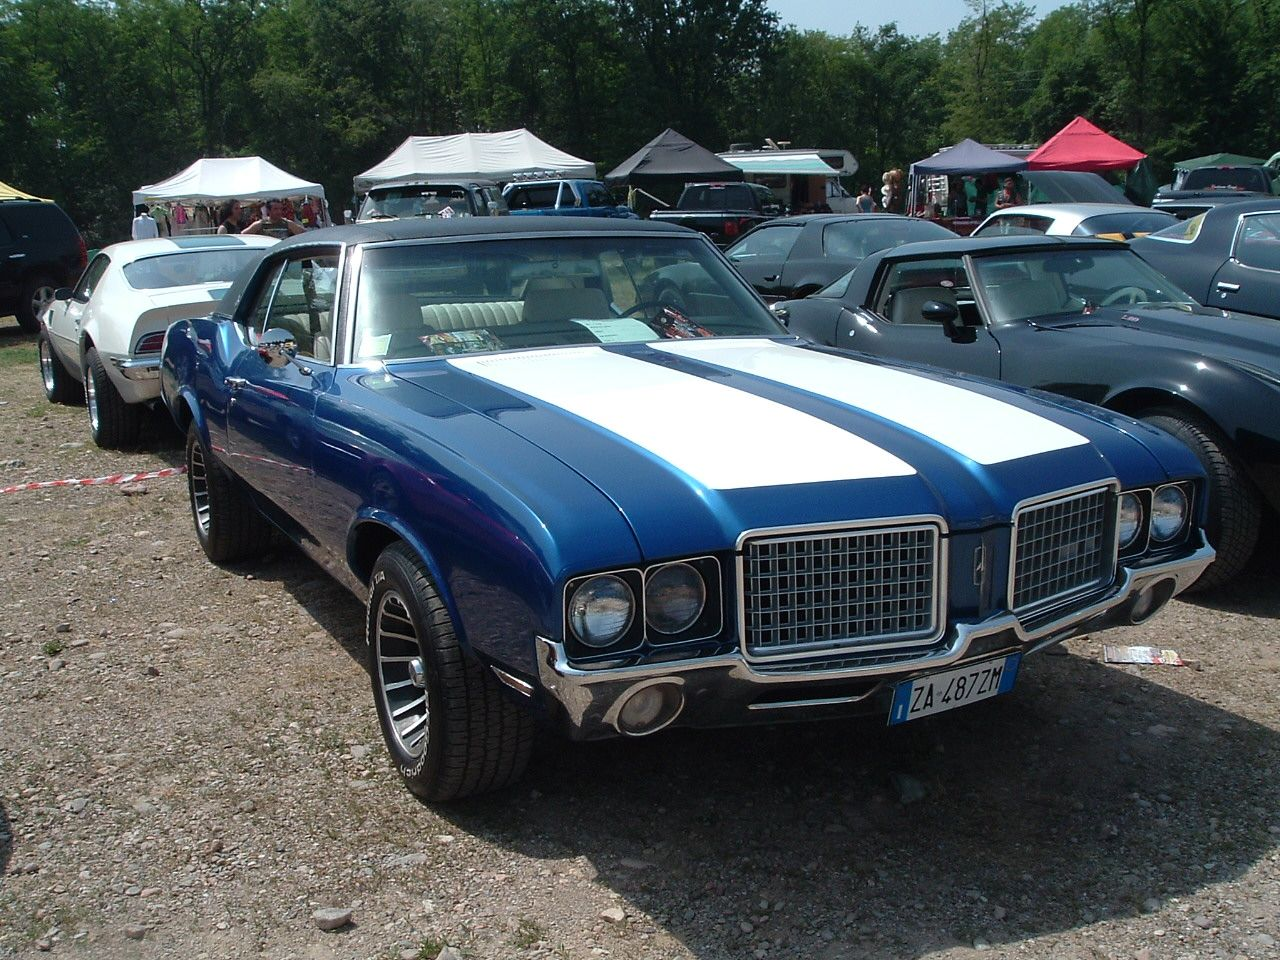 Oldsmobile Cutlass Supreme 1972 Oldsmobile Cutlass Supreme Picture Exterior 1972 Cutlass